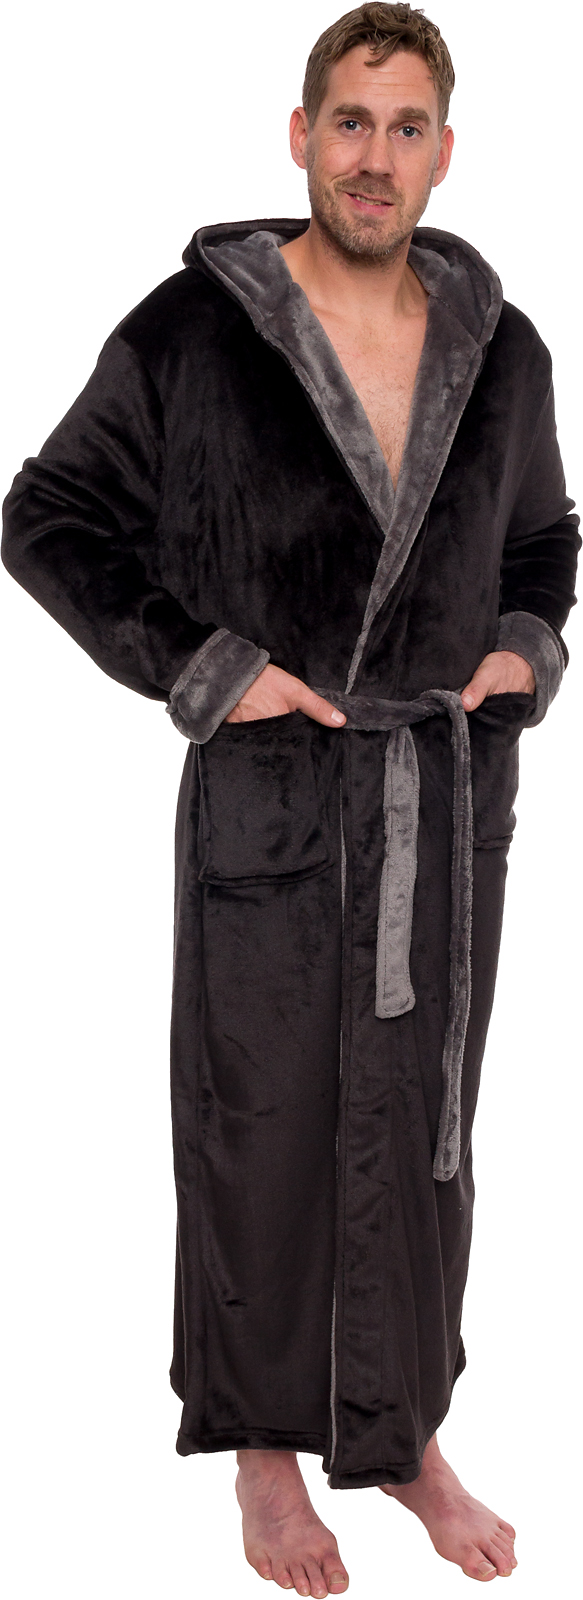 ross michaels mens hooded full length big and tall long bath robe ebay. Black Bedroom Furniture Sets. Home Design Ideas